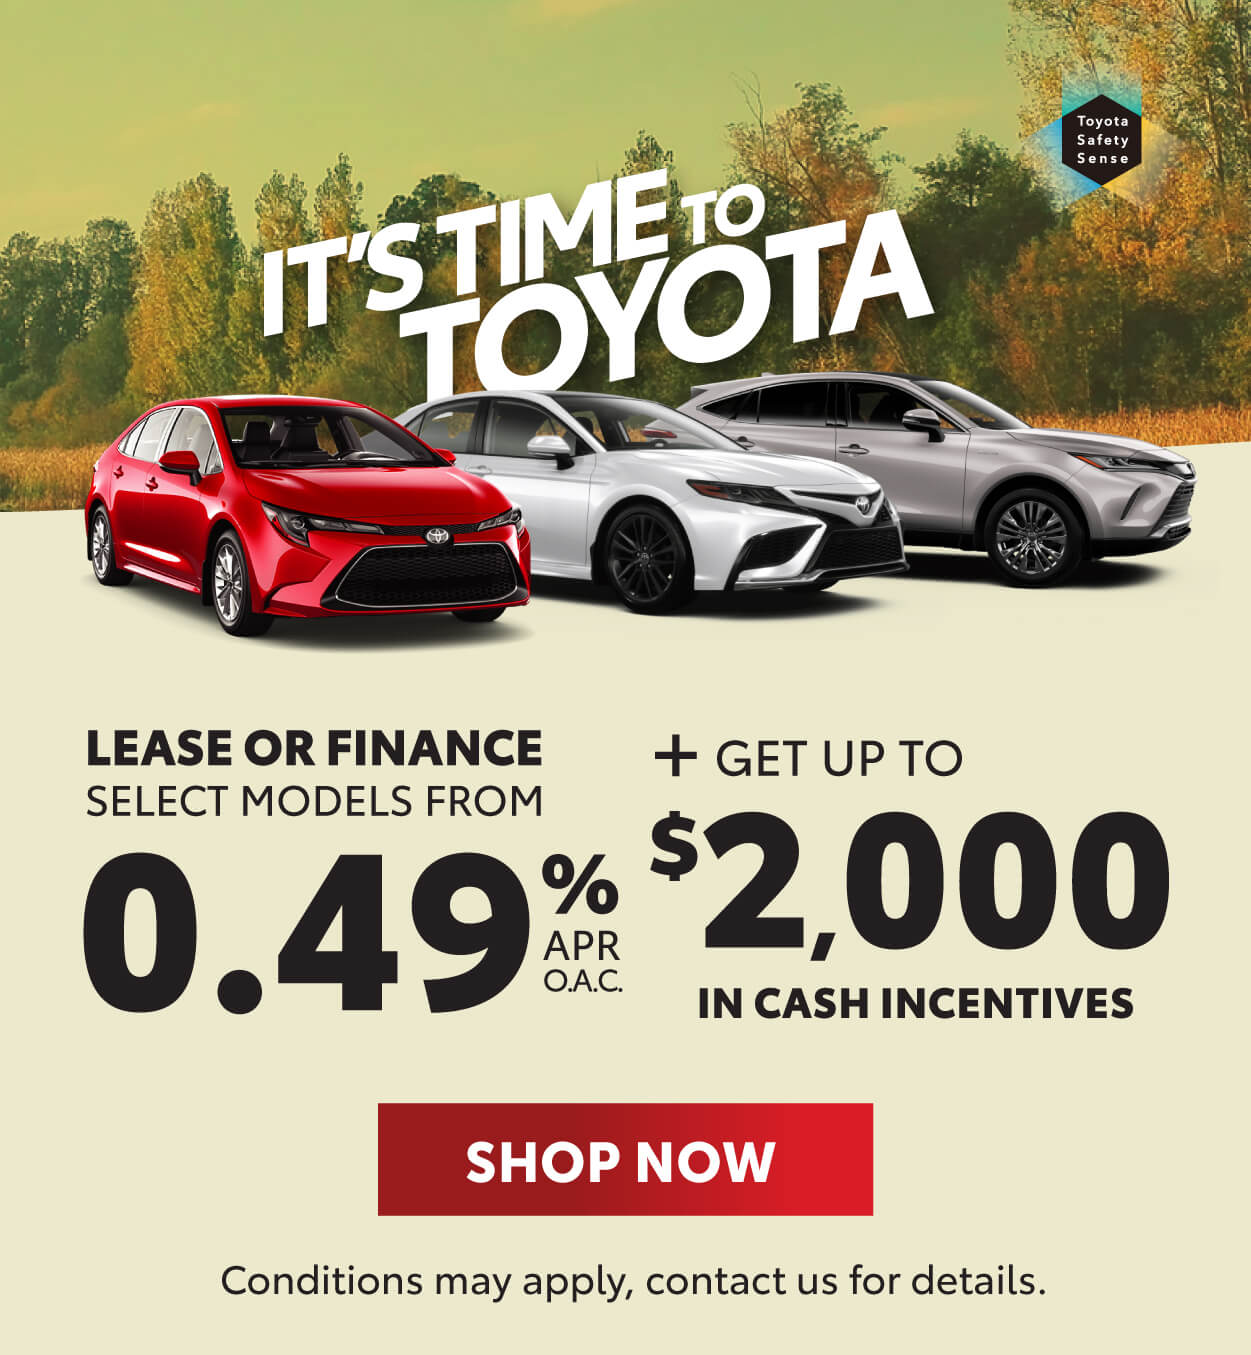 Toyota Promotions - Its Time To Toyota Georgetown Toyota